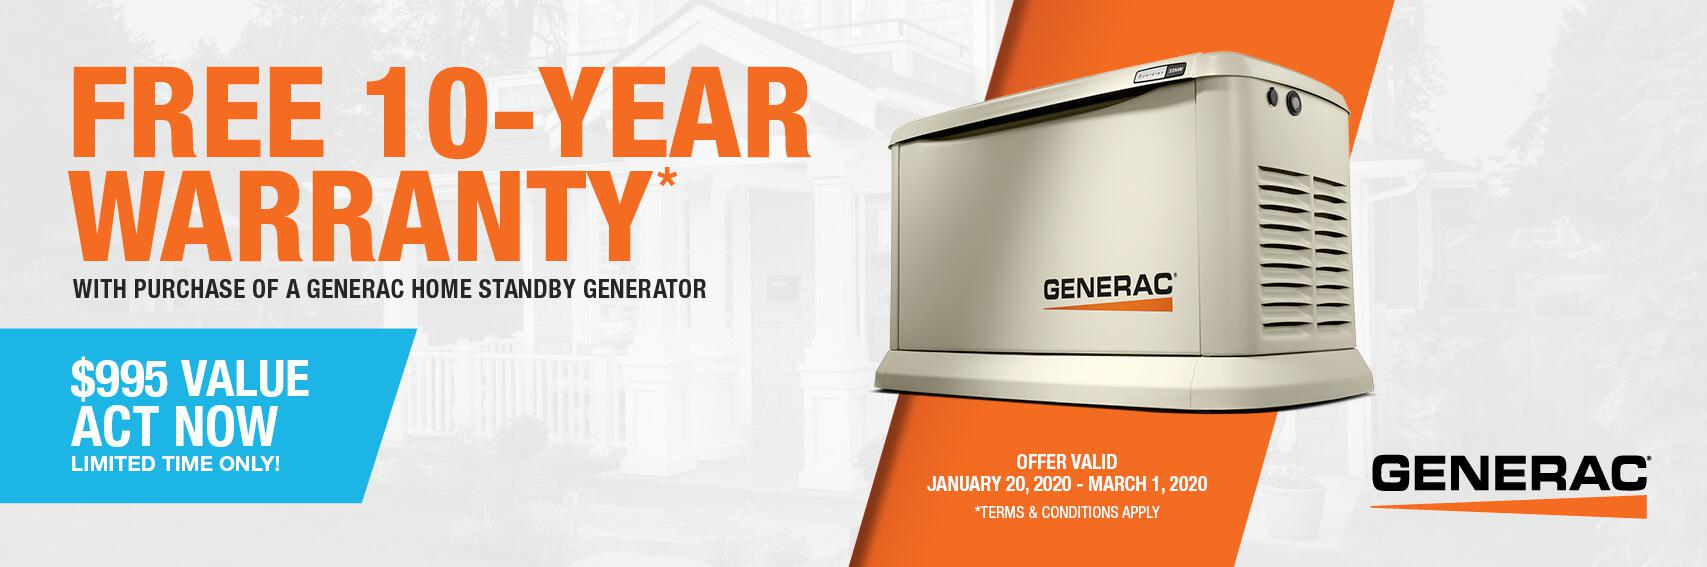 Homestandby Generator Deal | Warranty Offer | Generac Dealer | Raynham, MA